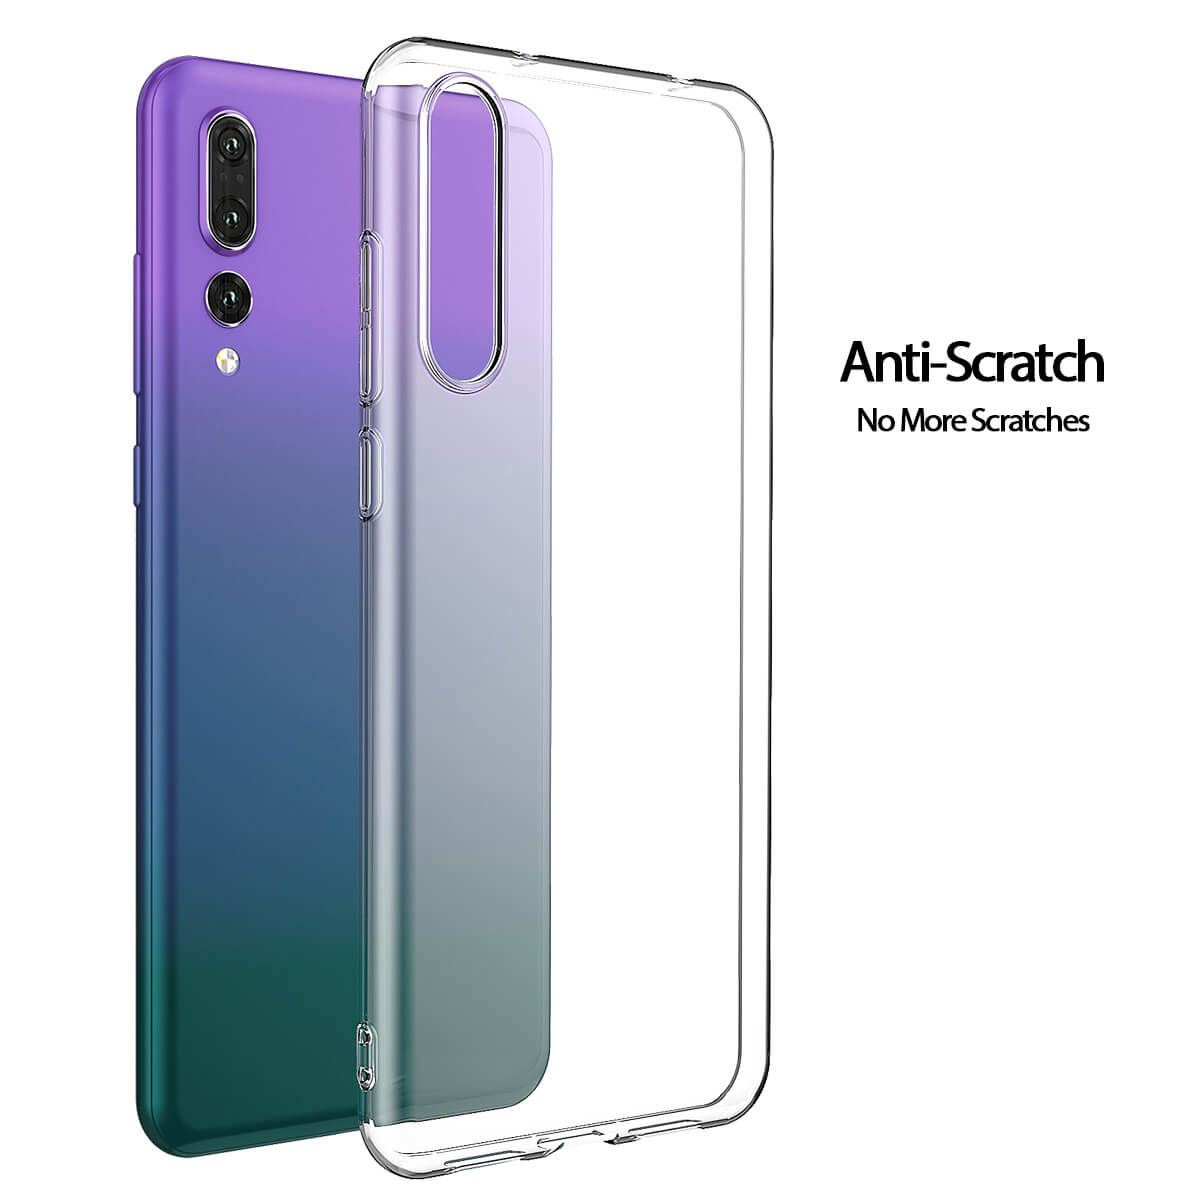 Shockproof-Silicone-Protective-Clear-Gel-Cover-Case-For-Huawei-P20-Pro-P-Smart thumbnail 82